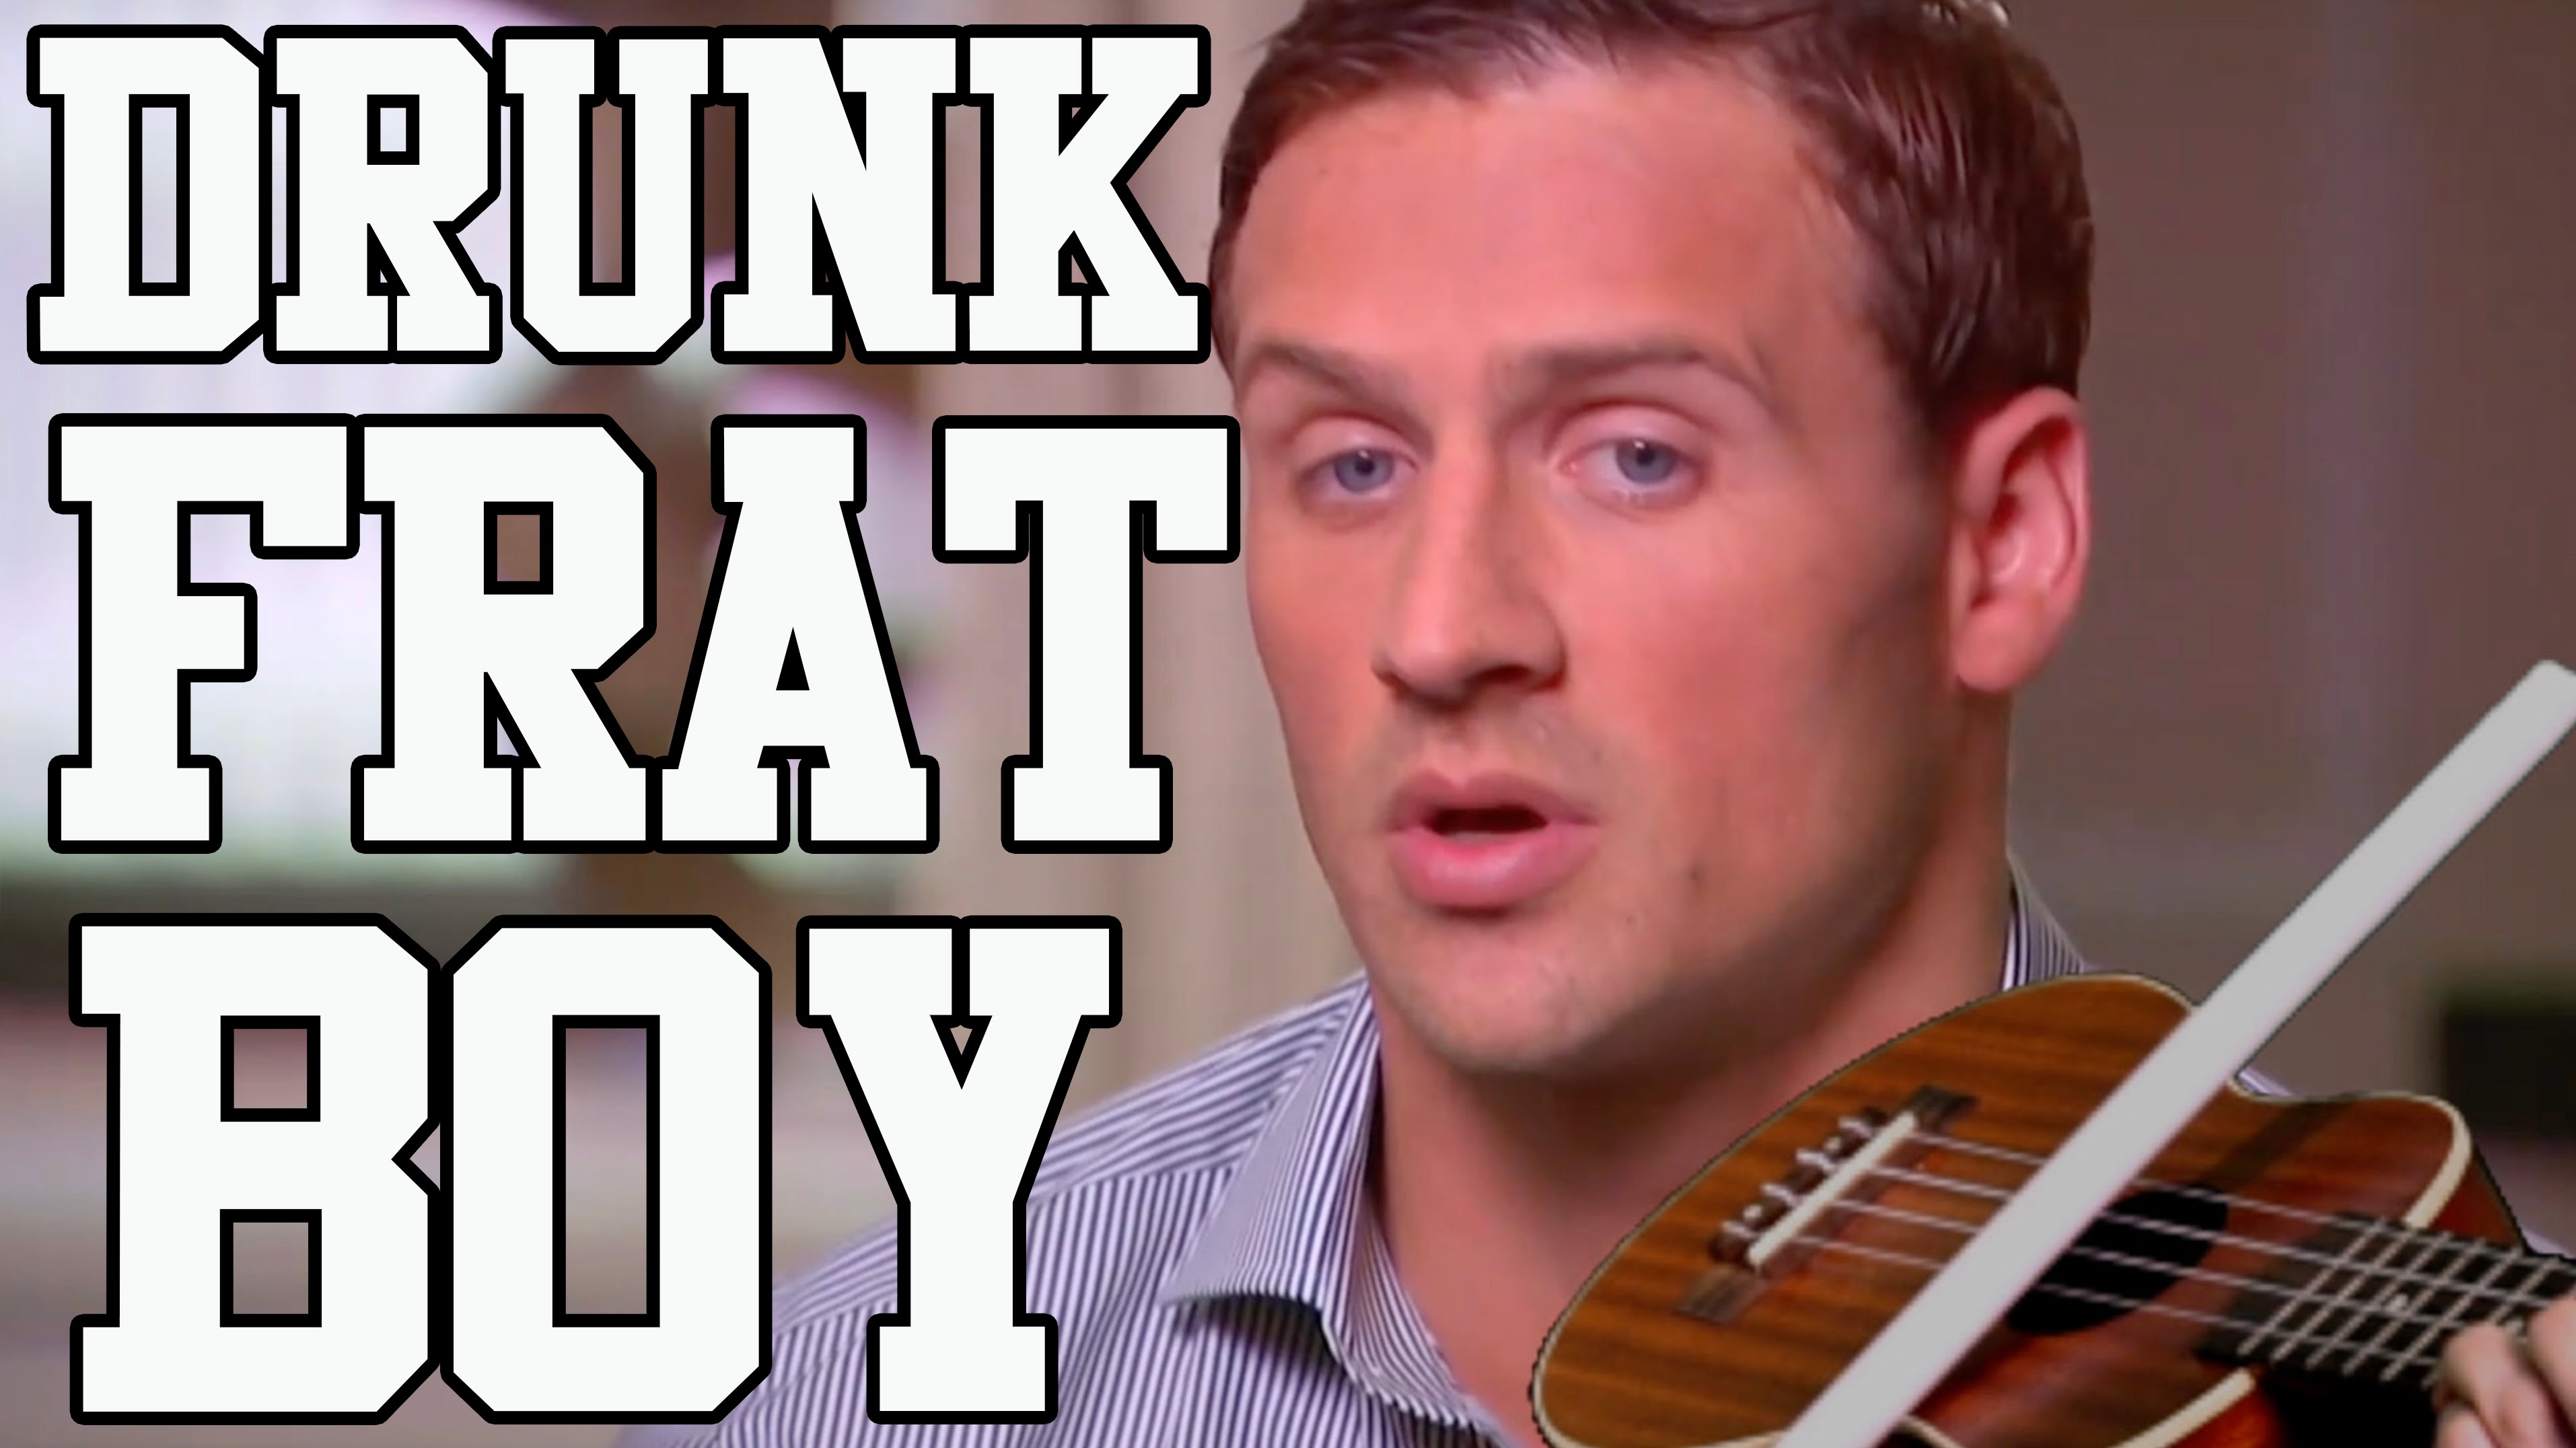 Ryan Lochte – Drunk Frat Boy